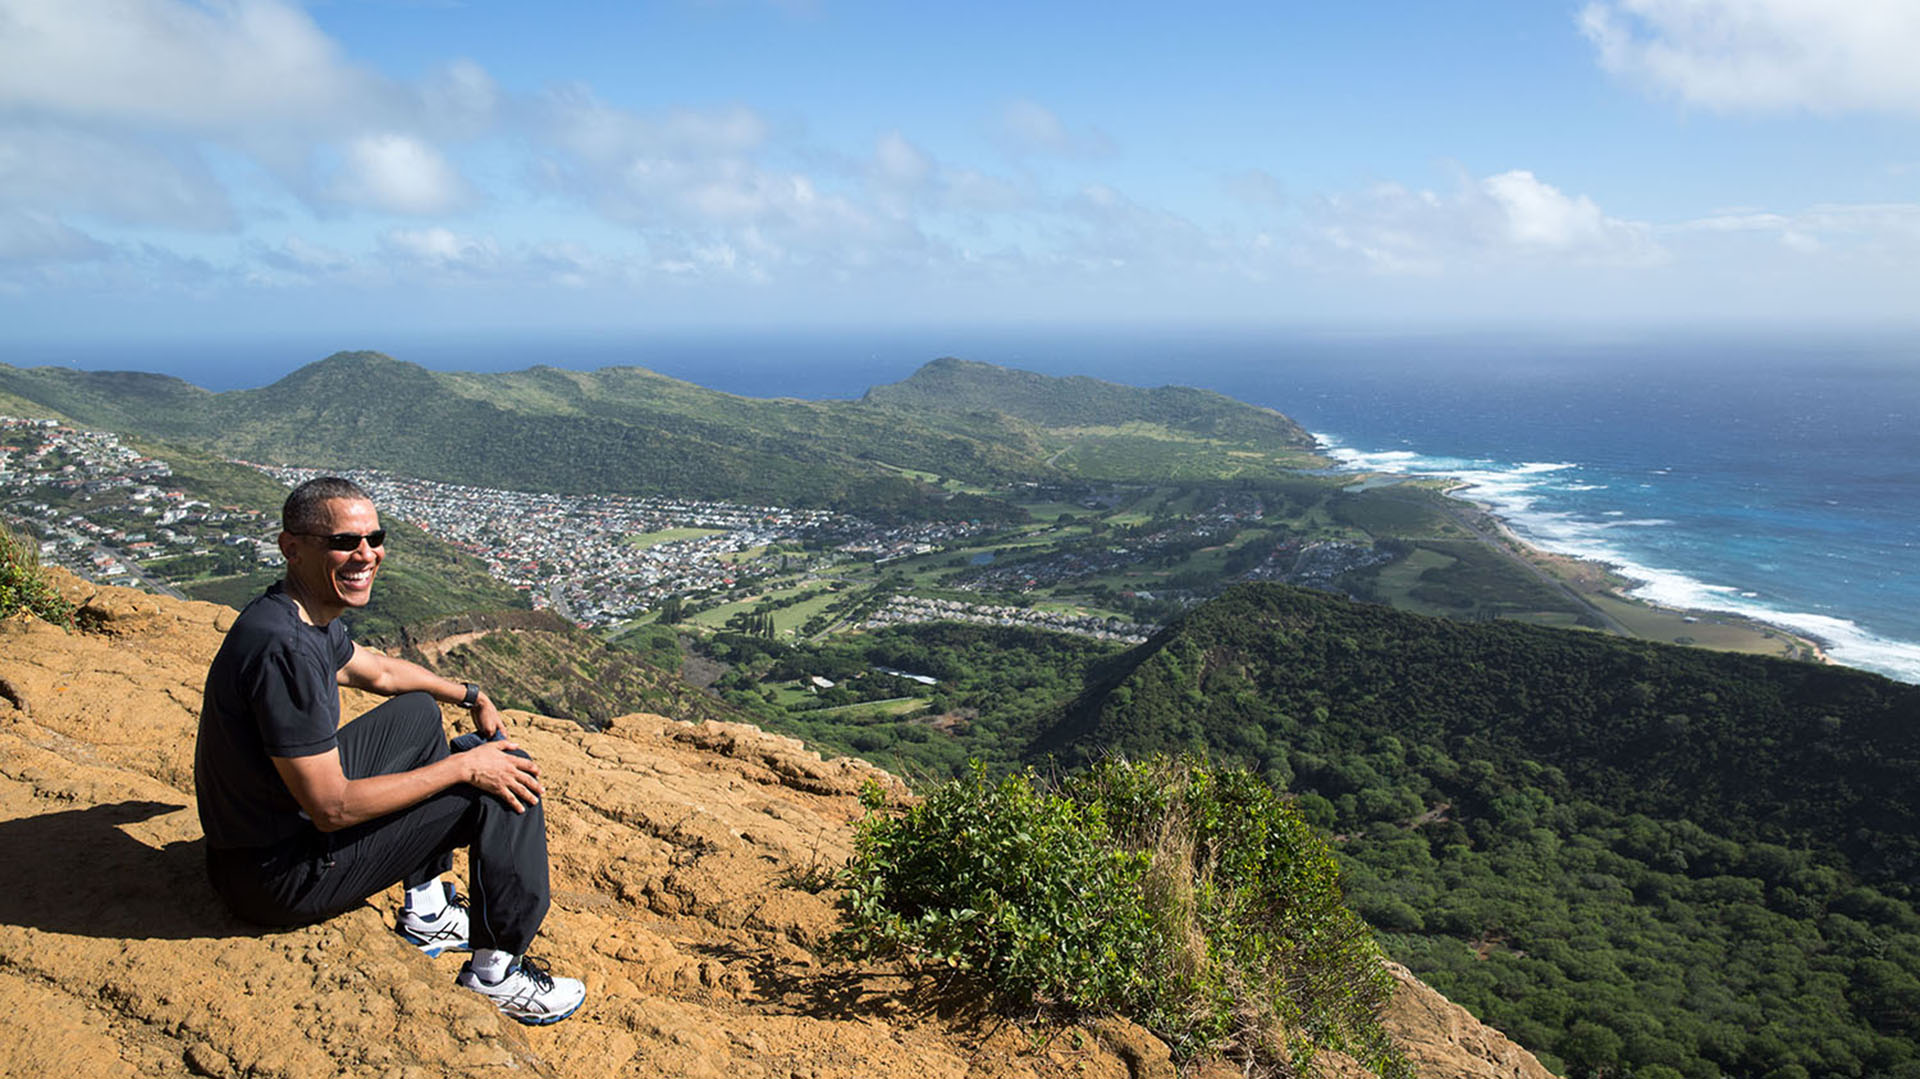 En la cima del crater de Koko Head, en Hawaii, lueg de trepar por una camino de 1,048 escalones de madera. (Official White House Photo by Pete Souza).